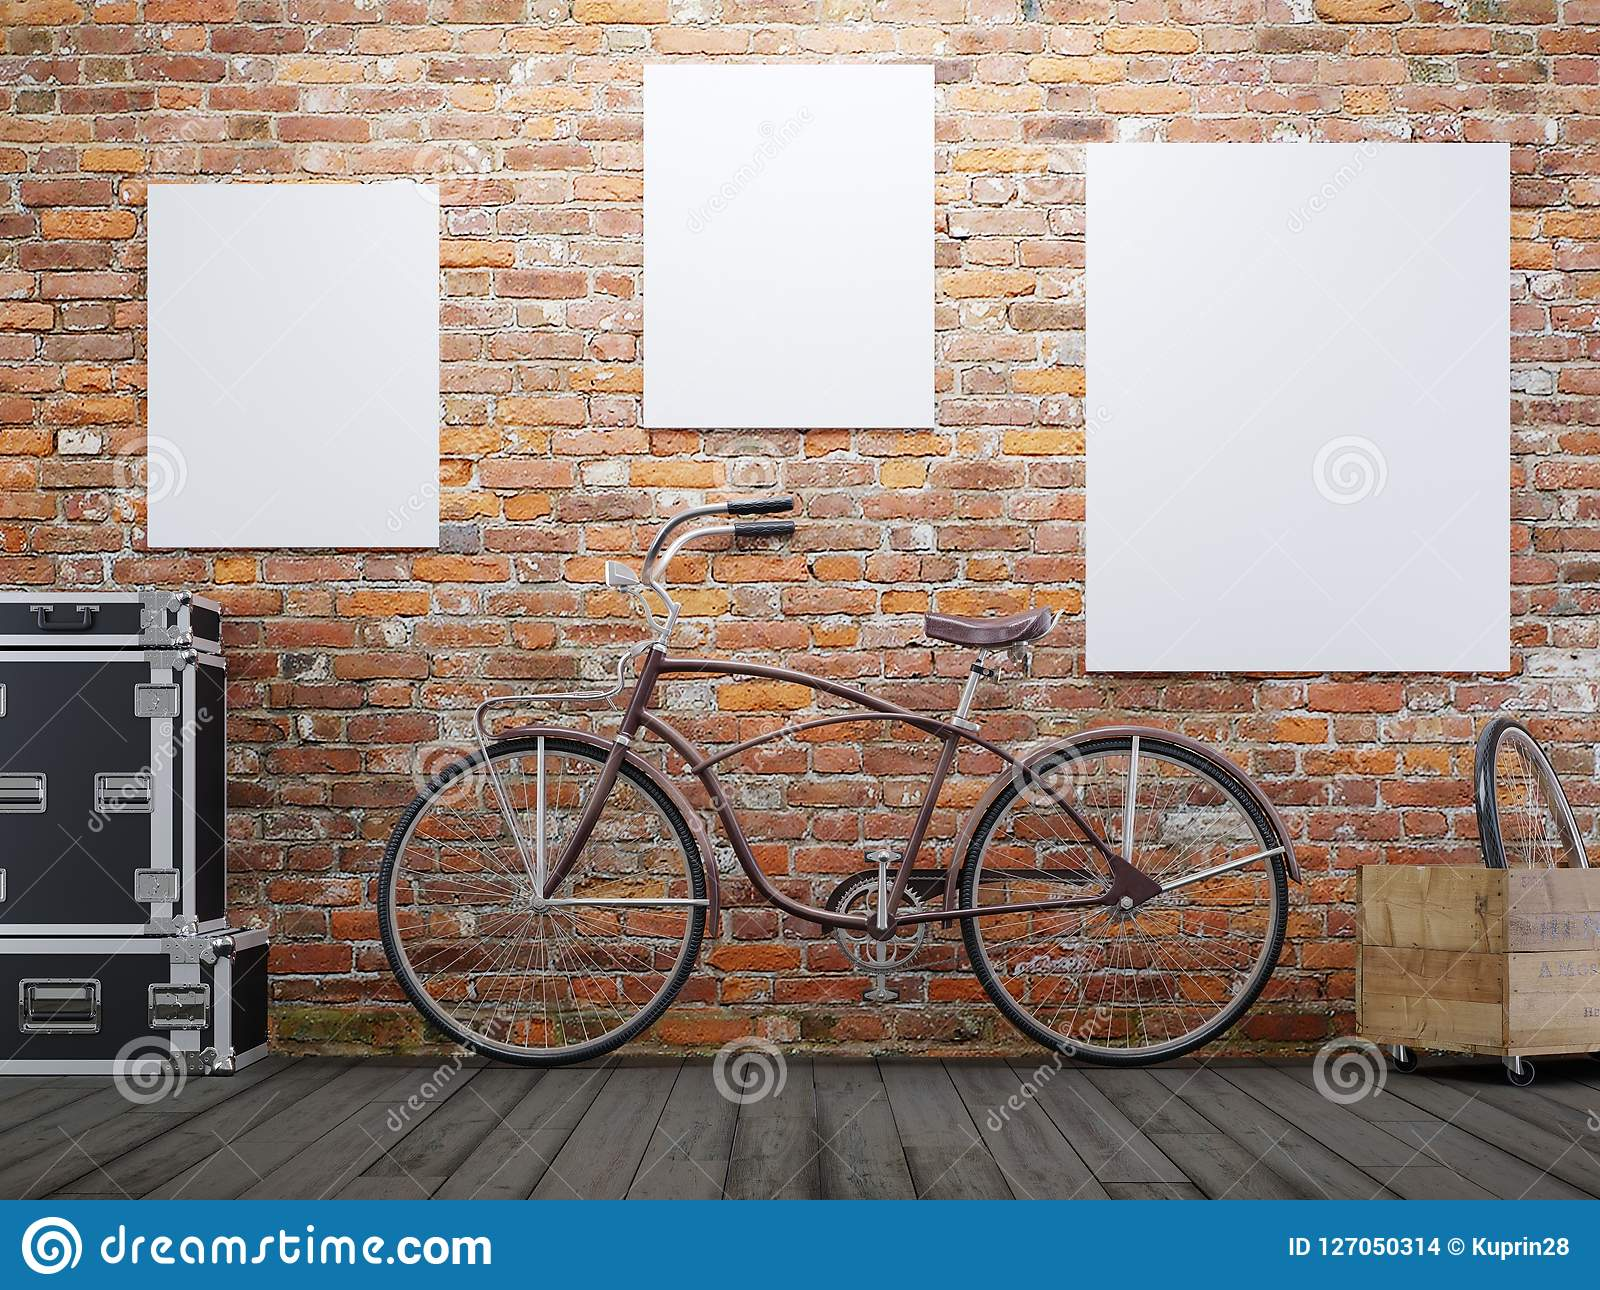 mock up poster and canvas in vintage hipster loft exterior background with bicycle.